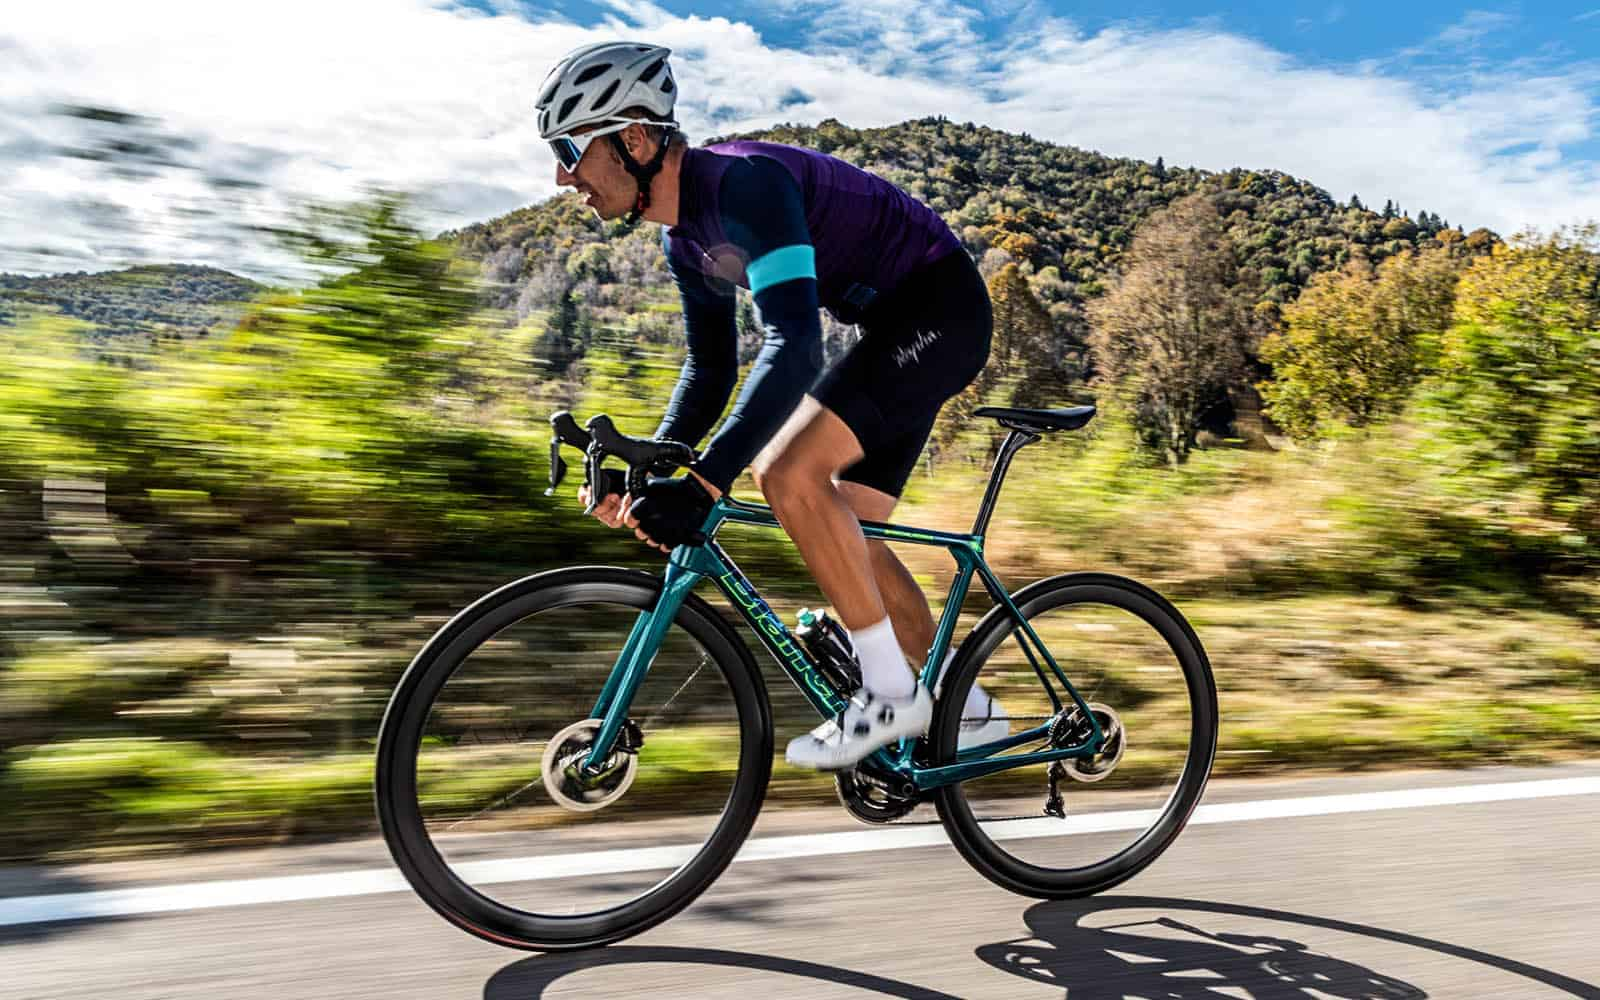 Criterium-Cycles-Action-Shot-of-Bianchi-Specialissima